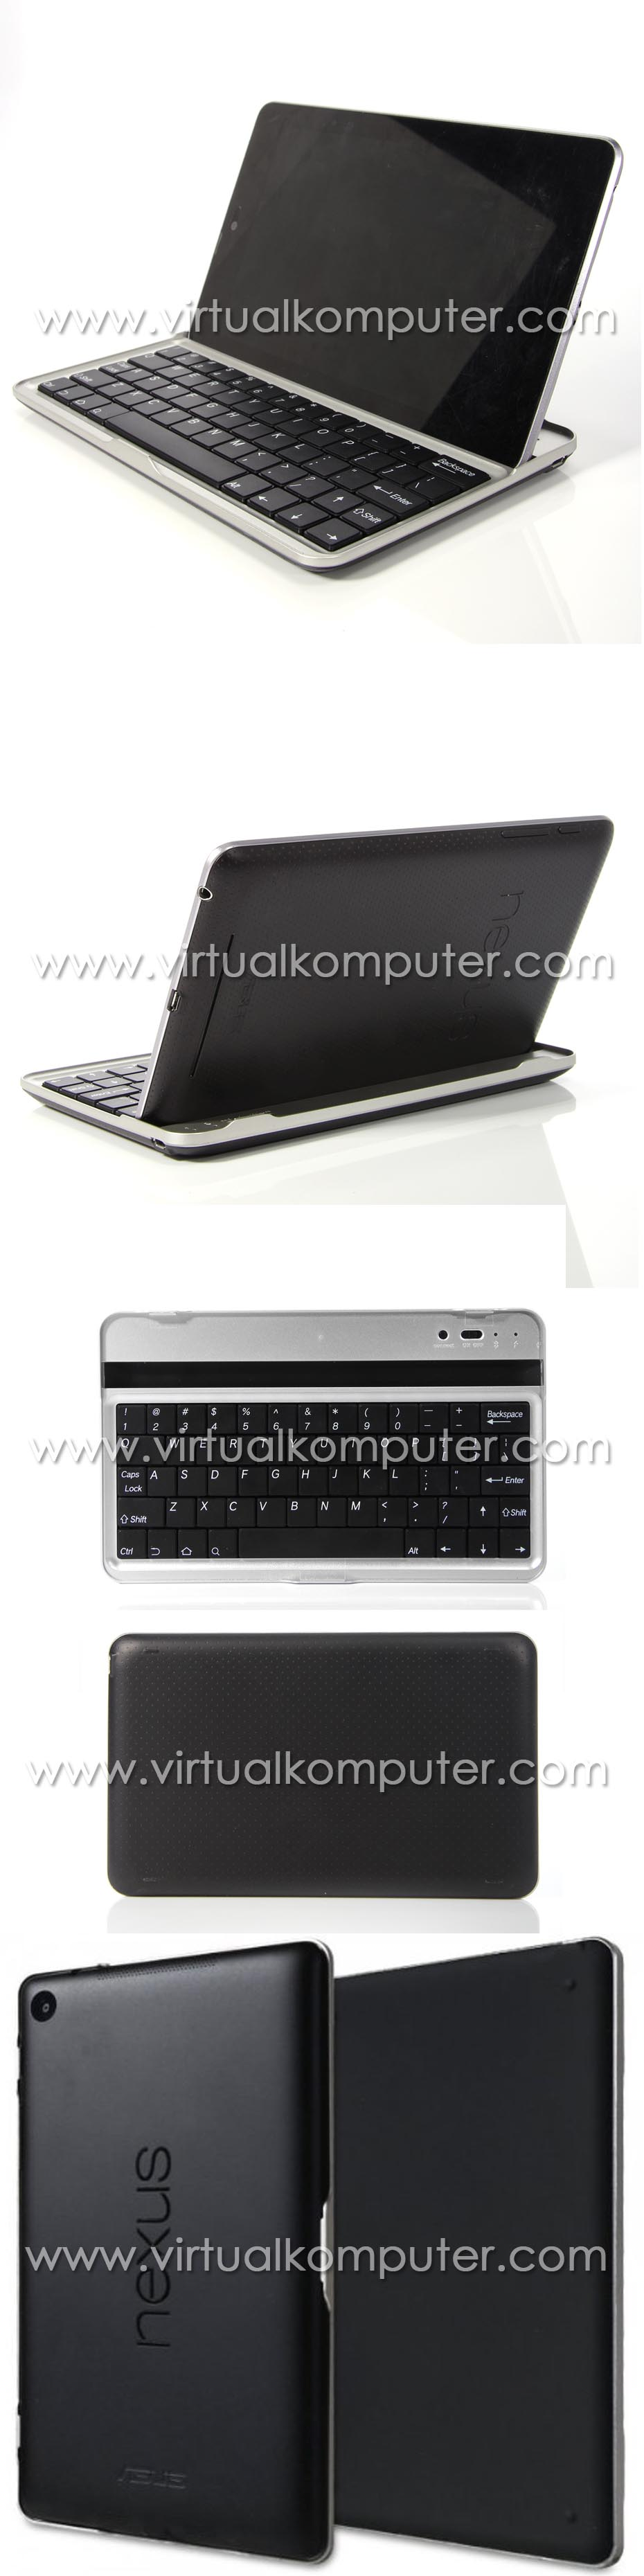 Ultra Slim Keyboard for Google Nexus 7 2012 Overview